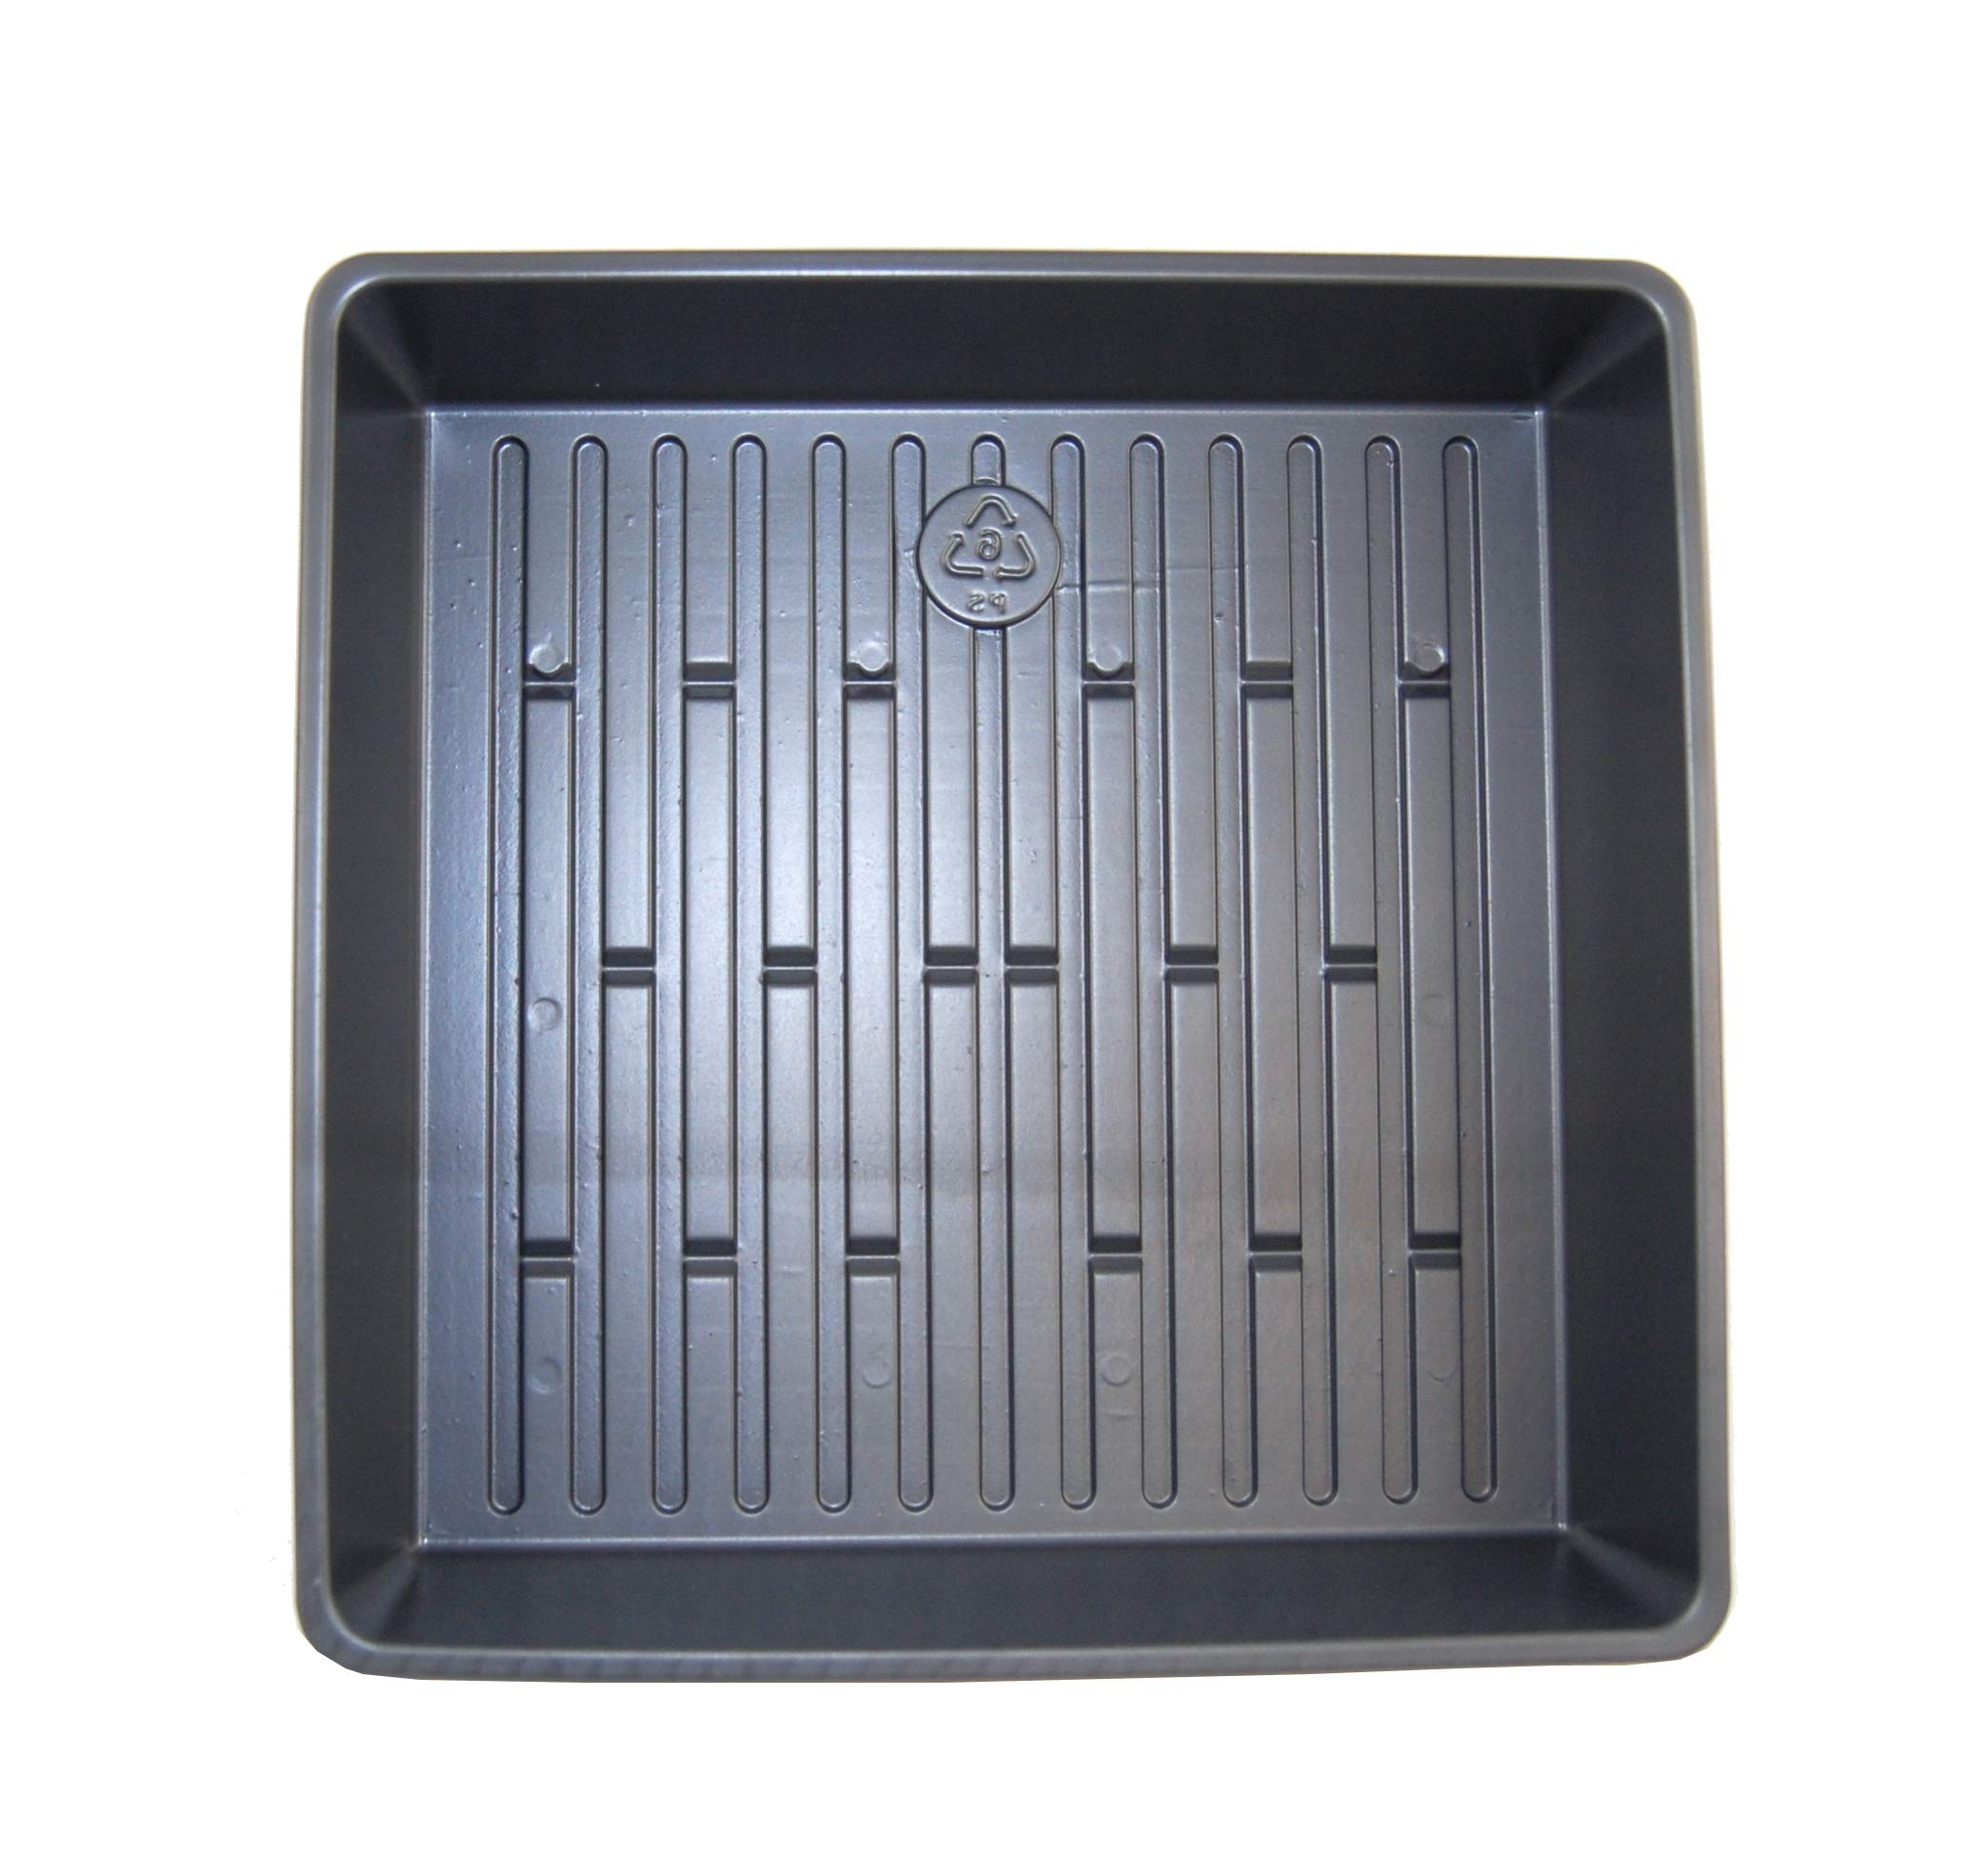 Wheatgrass Growing Tray - 10 1/2'' x10 1/12''x 2 1/4'' Wheatgrass Seed Trays - No Holes - 10 pack